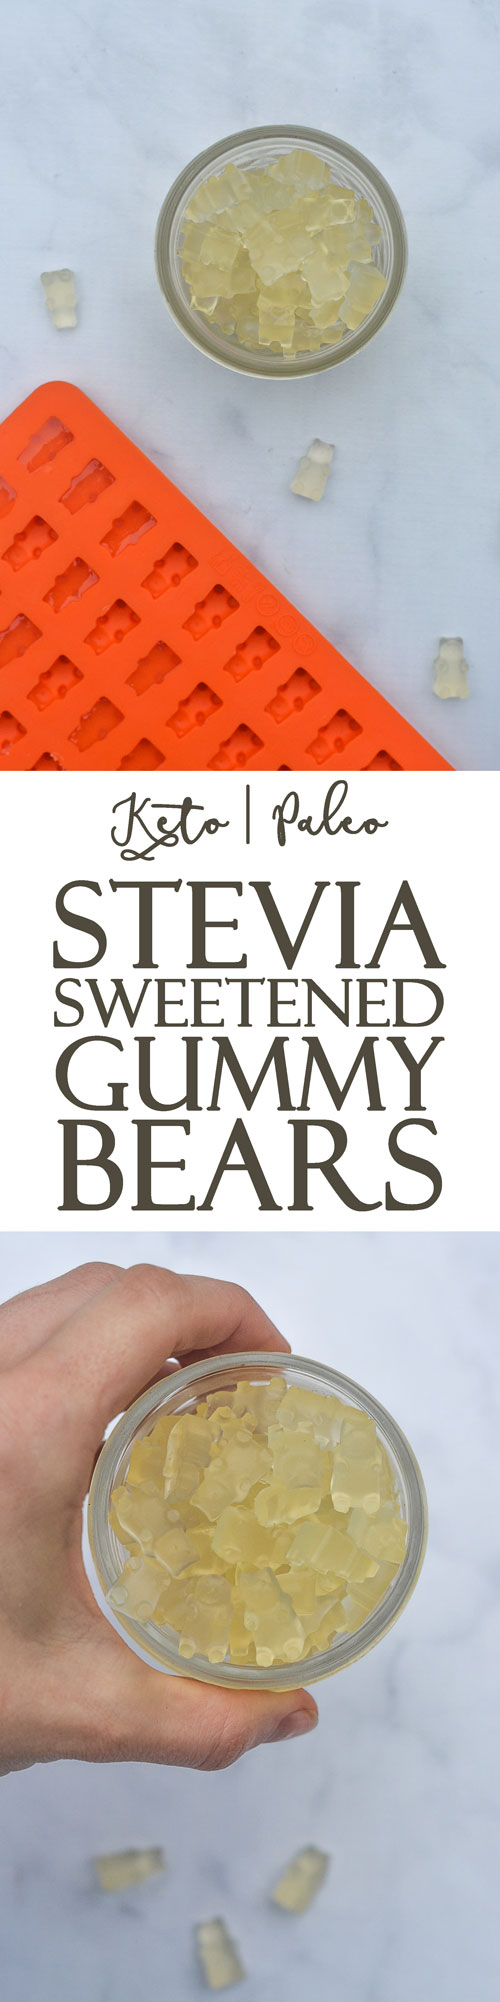 A yummy snack for both kids and adults alike, these homemade stevia-sweetened gummy bears are a fun treat to make! Super simple to customize, just throw in your favorite flavoring. Keto, sugar-free, low-carb, Paleo.